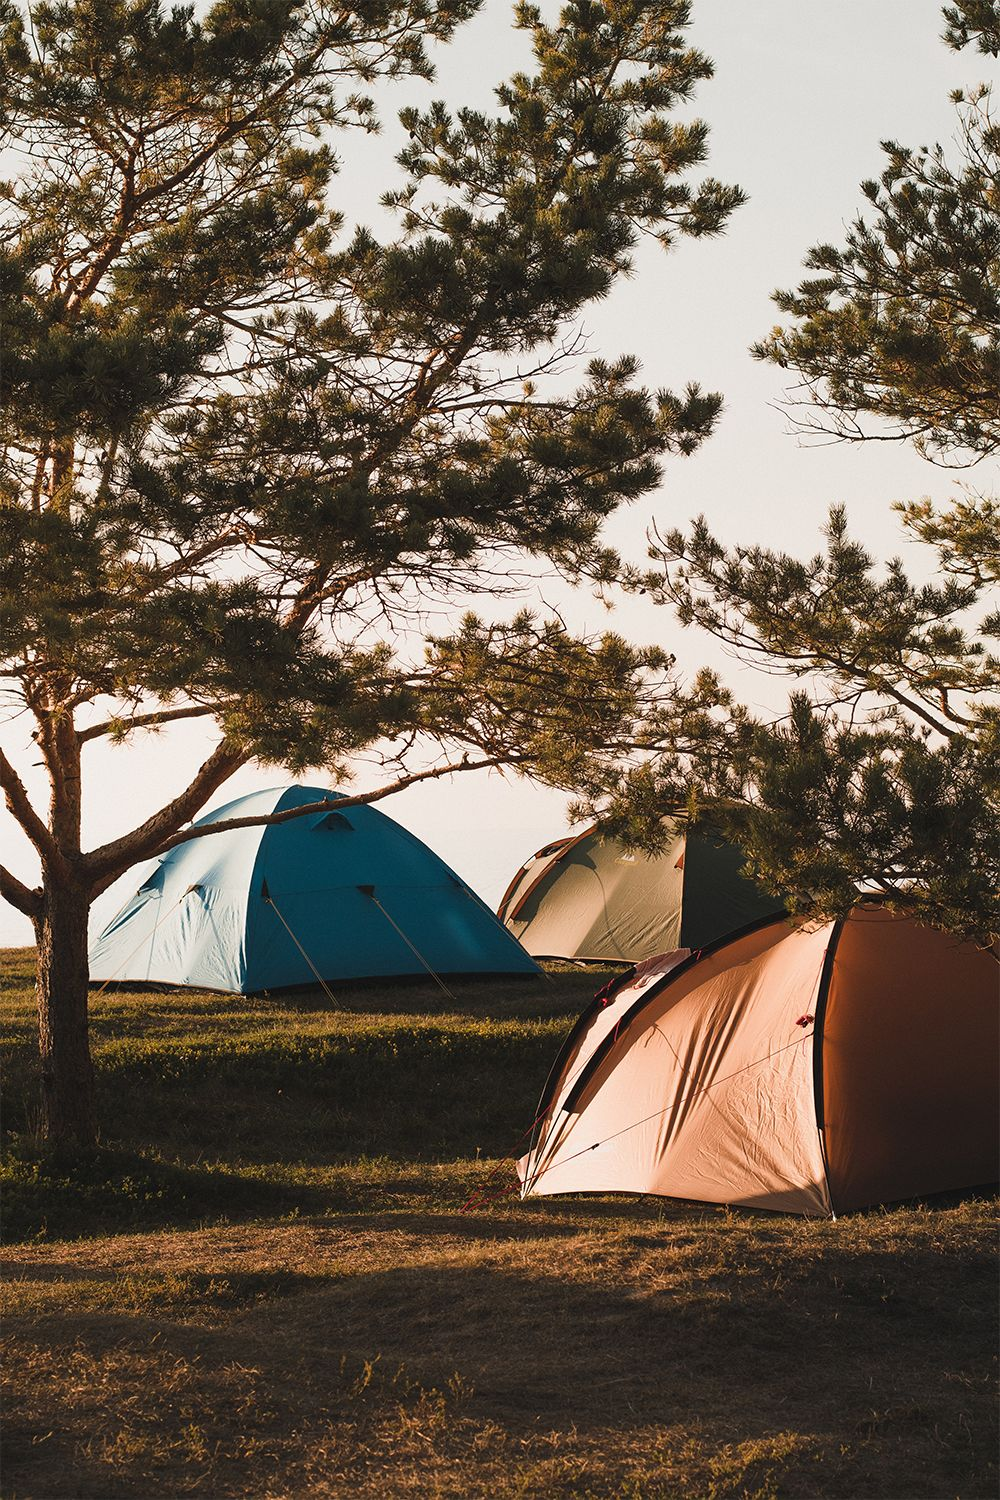 Camping With A Tent Camping Types Of Hiking Trip